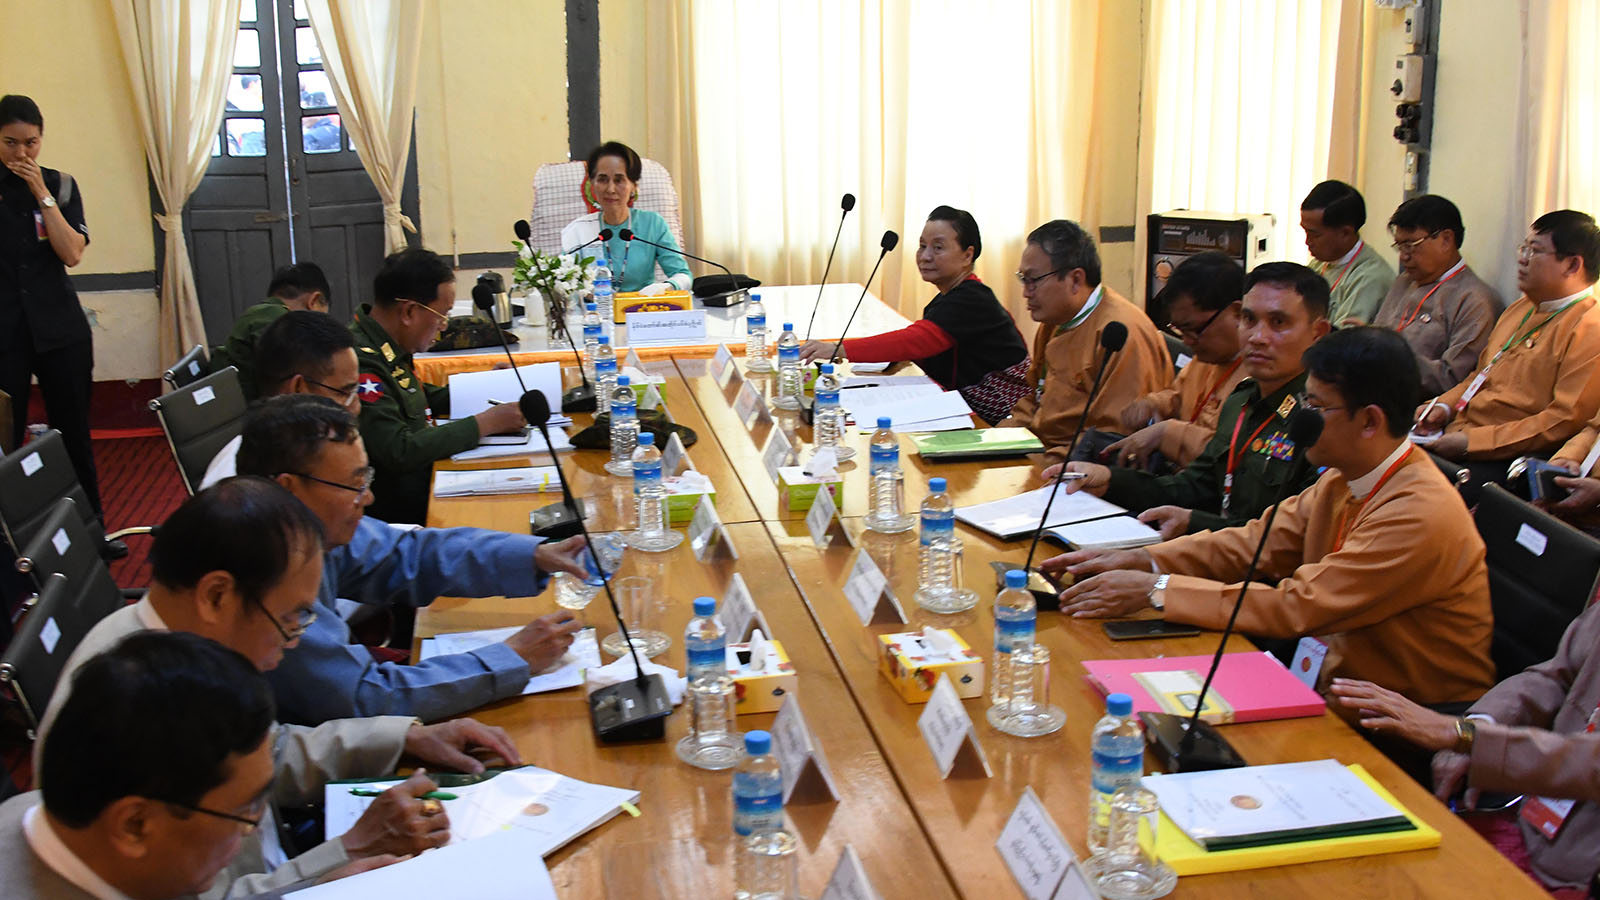 State Counsellor Daw Aung San Suu Kyi holds a meeting with Union Ministers, Chief Ministers of Kayin and Mon States, at the Mawlamyine Airport.Photo: MNA